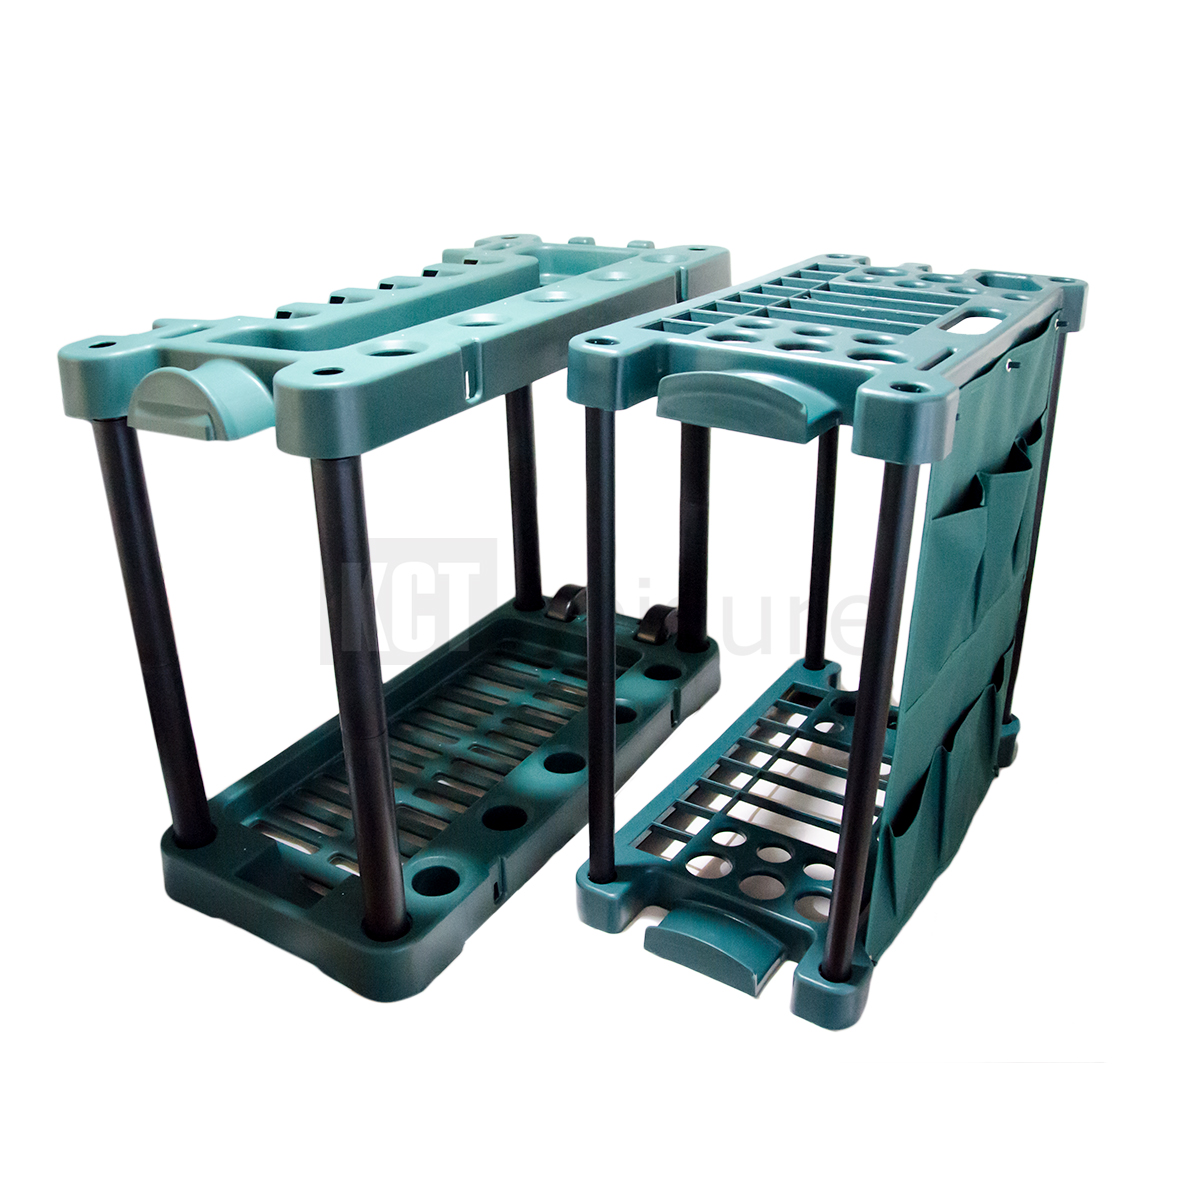 GARDEN TOOL TROLLEY RACK ORGANISER GARDENING STORAGE HOLDER UNIT